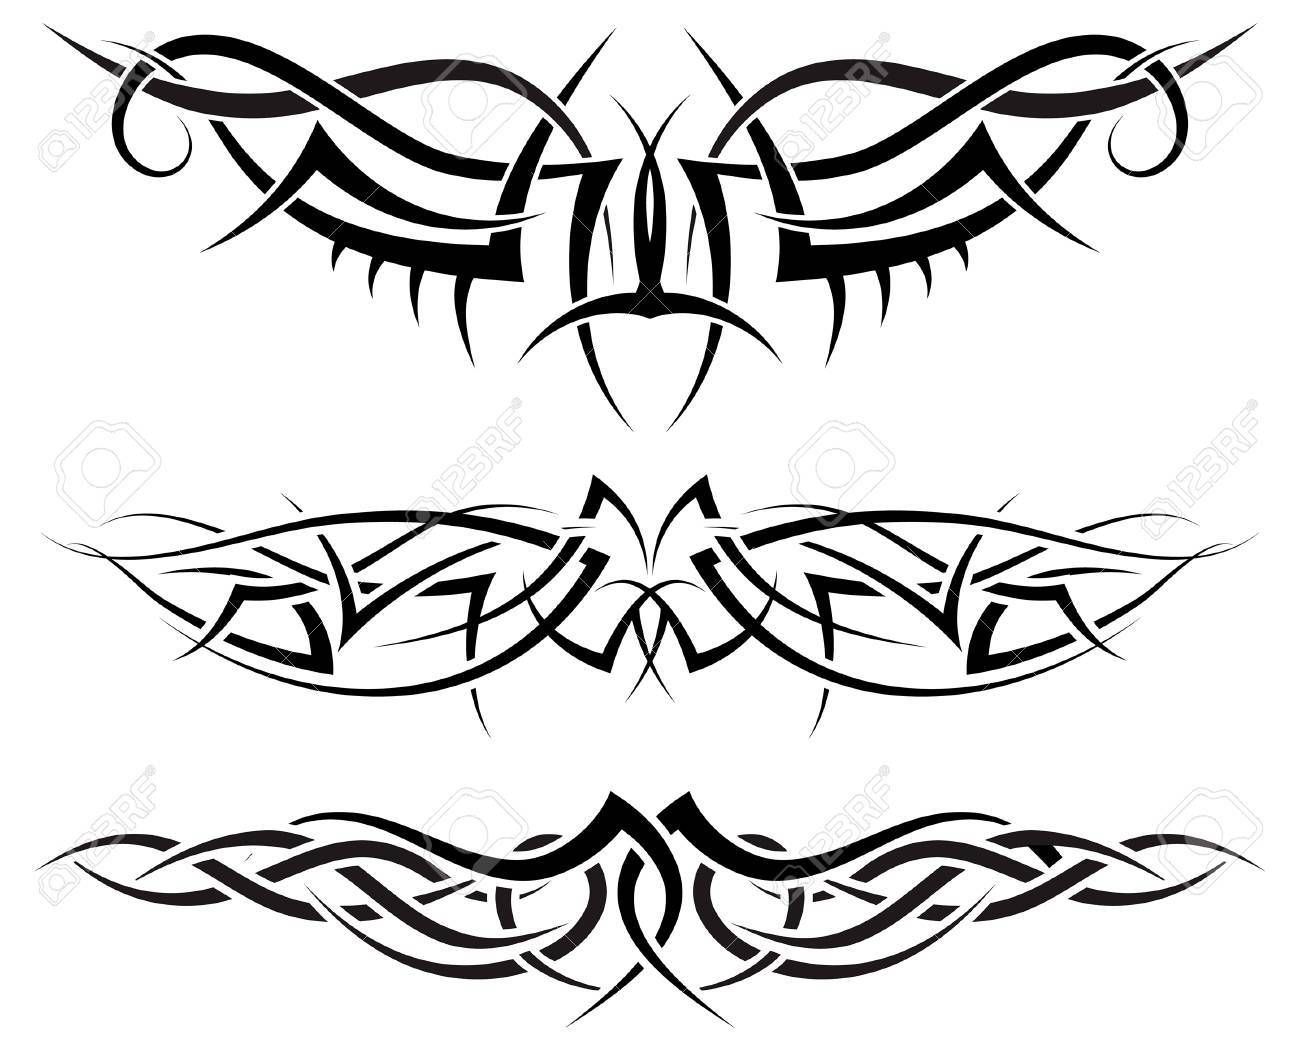 Patterns of tribal tattoo for design use Stock Vector - 5299565